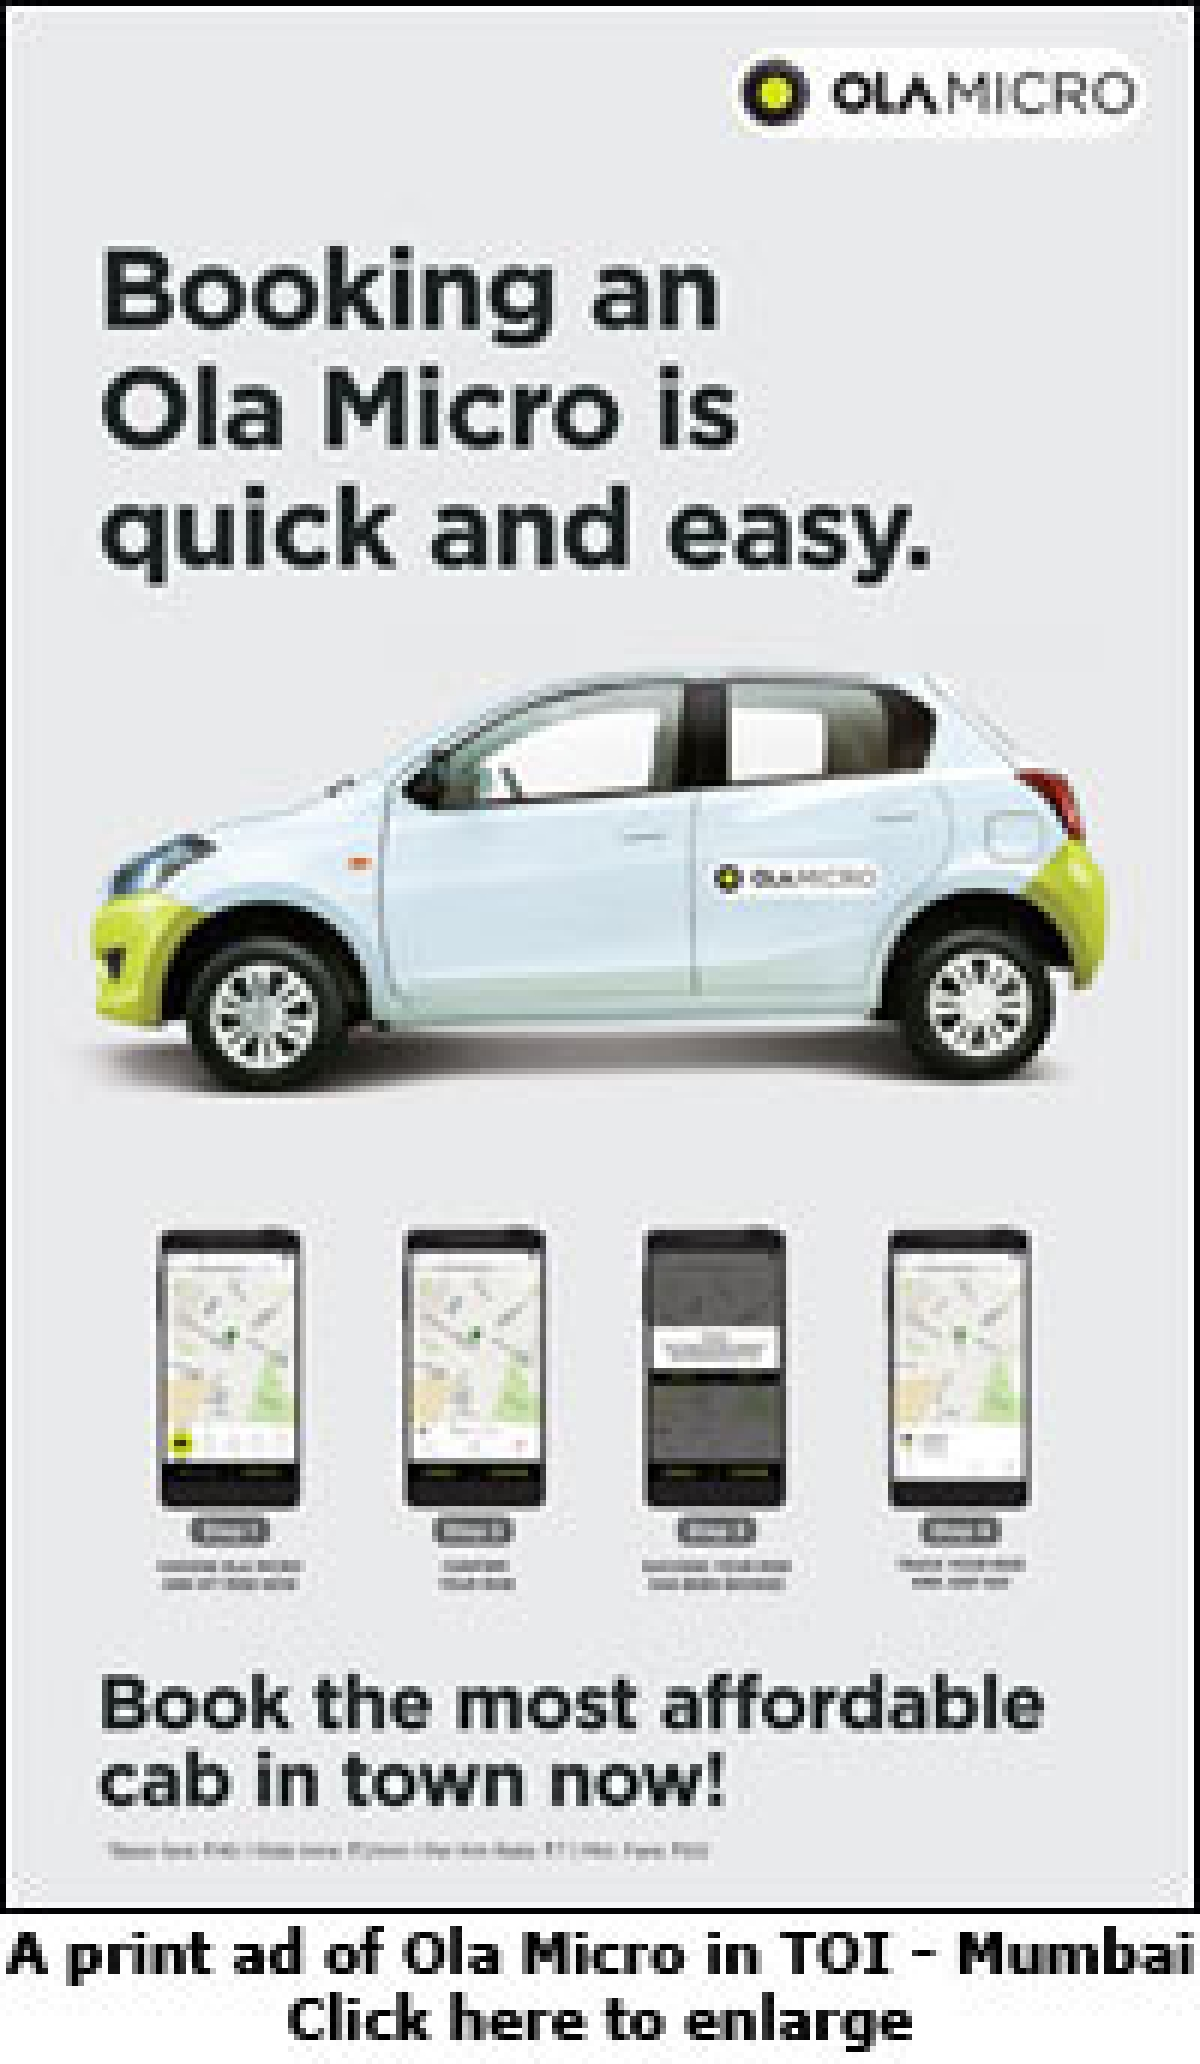 Ola insists it costs less than walking